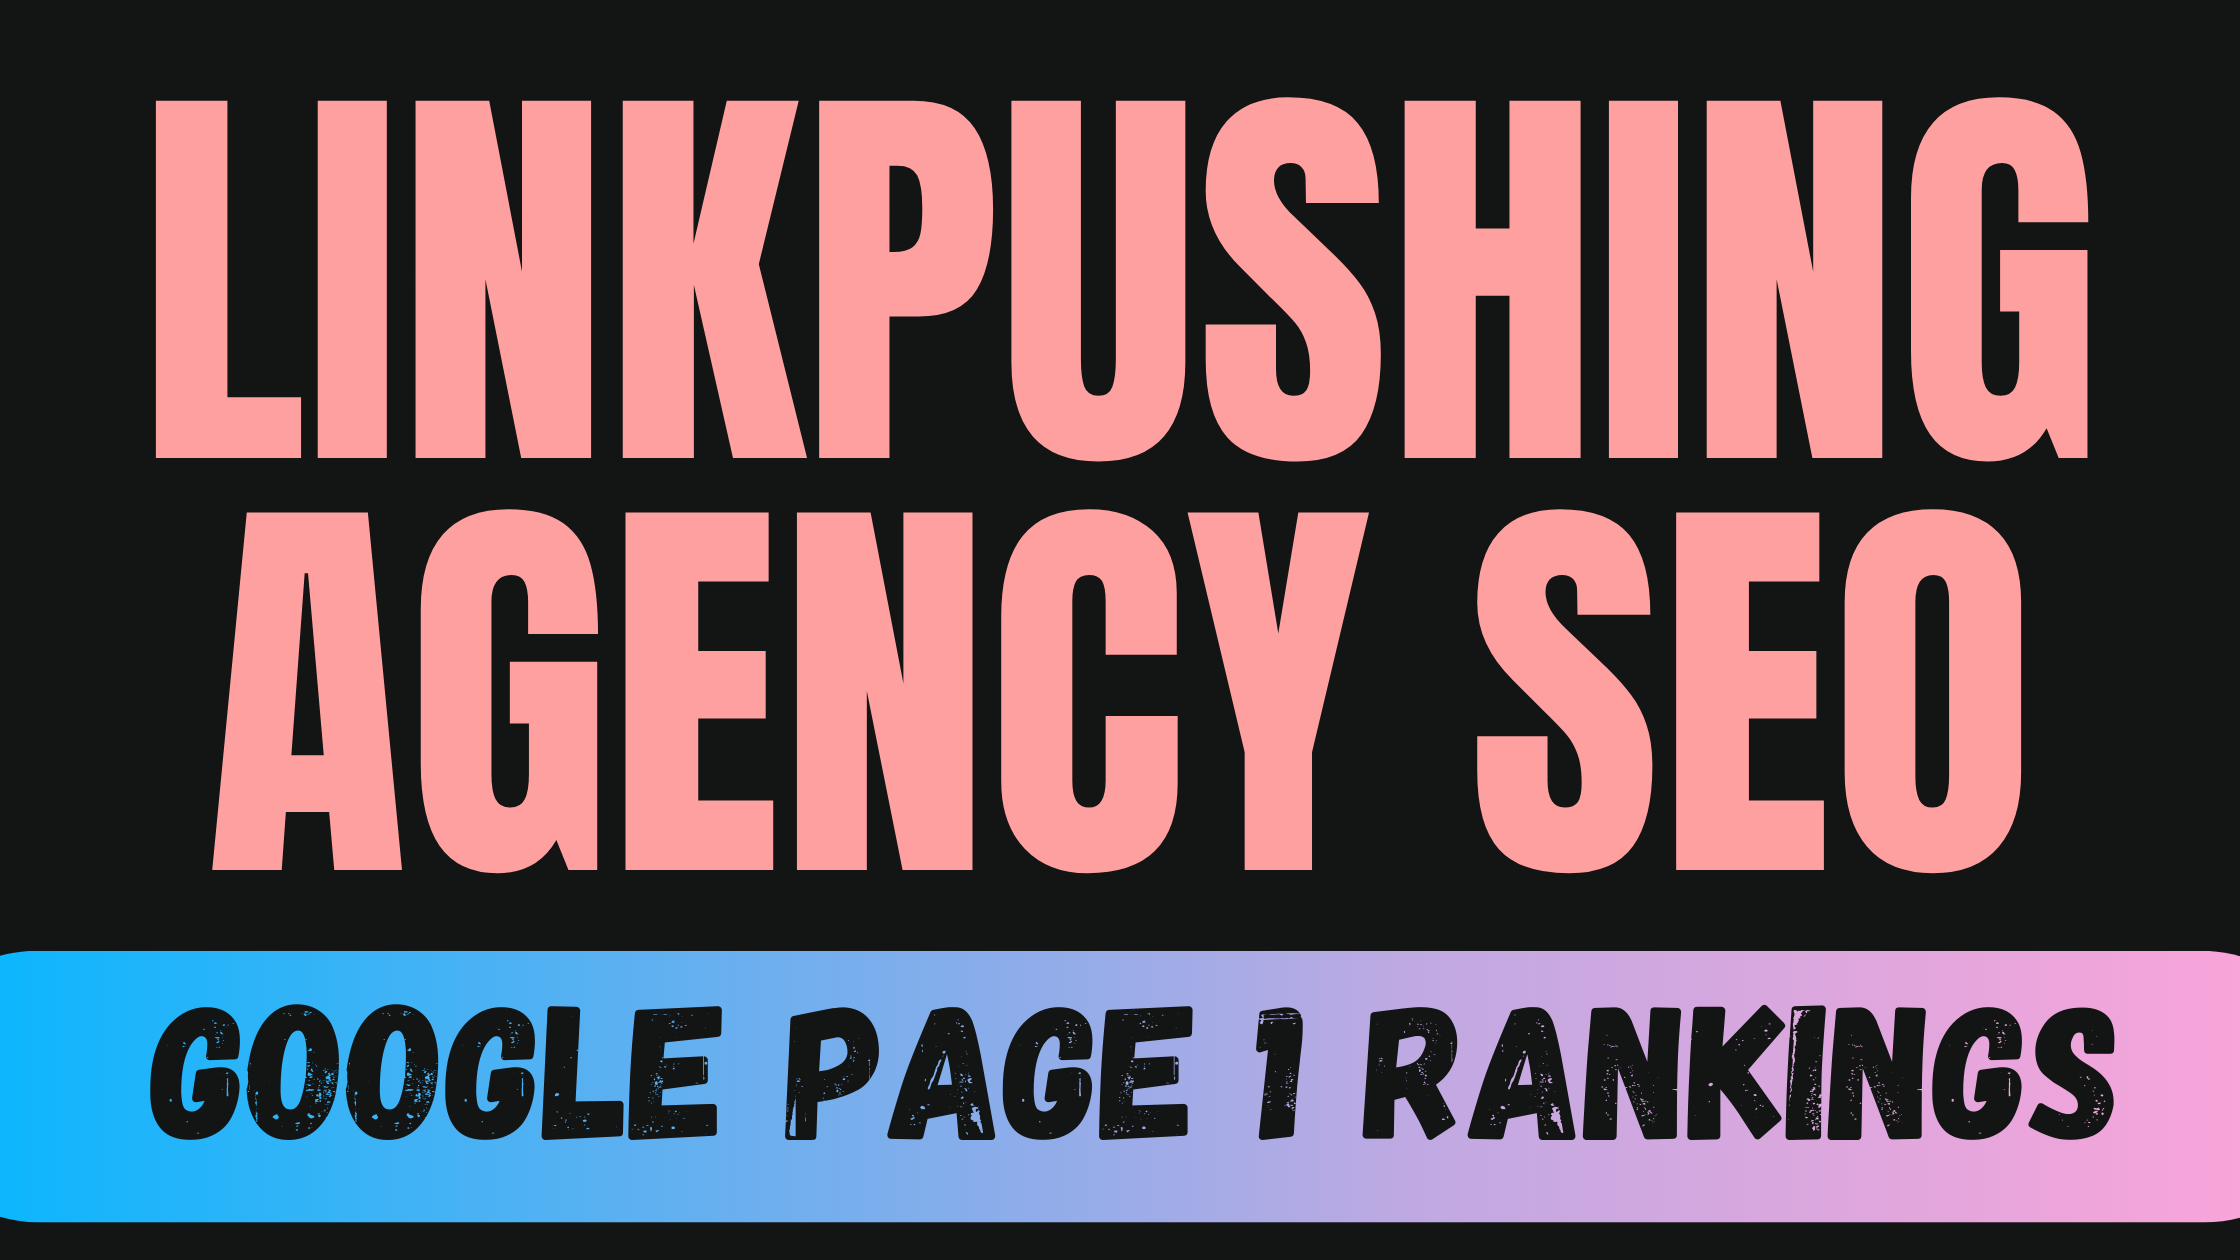 Linkpushing AGENCY SEO 10x Results Guaranteed OR Refund